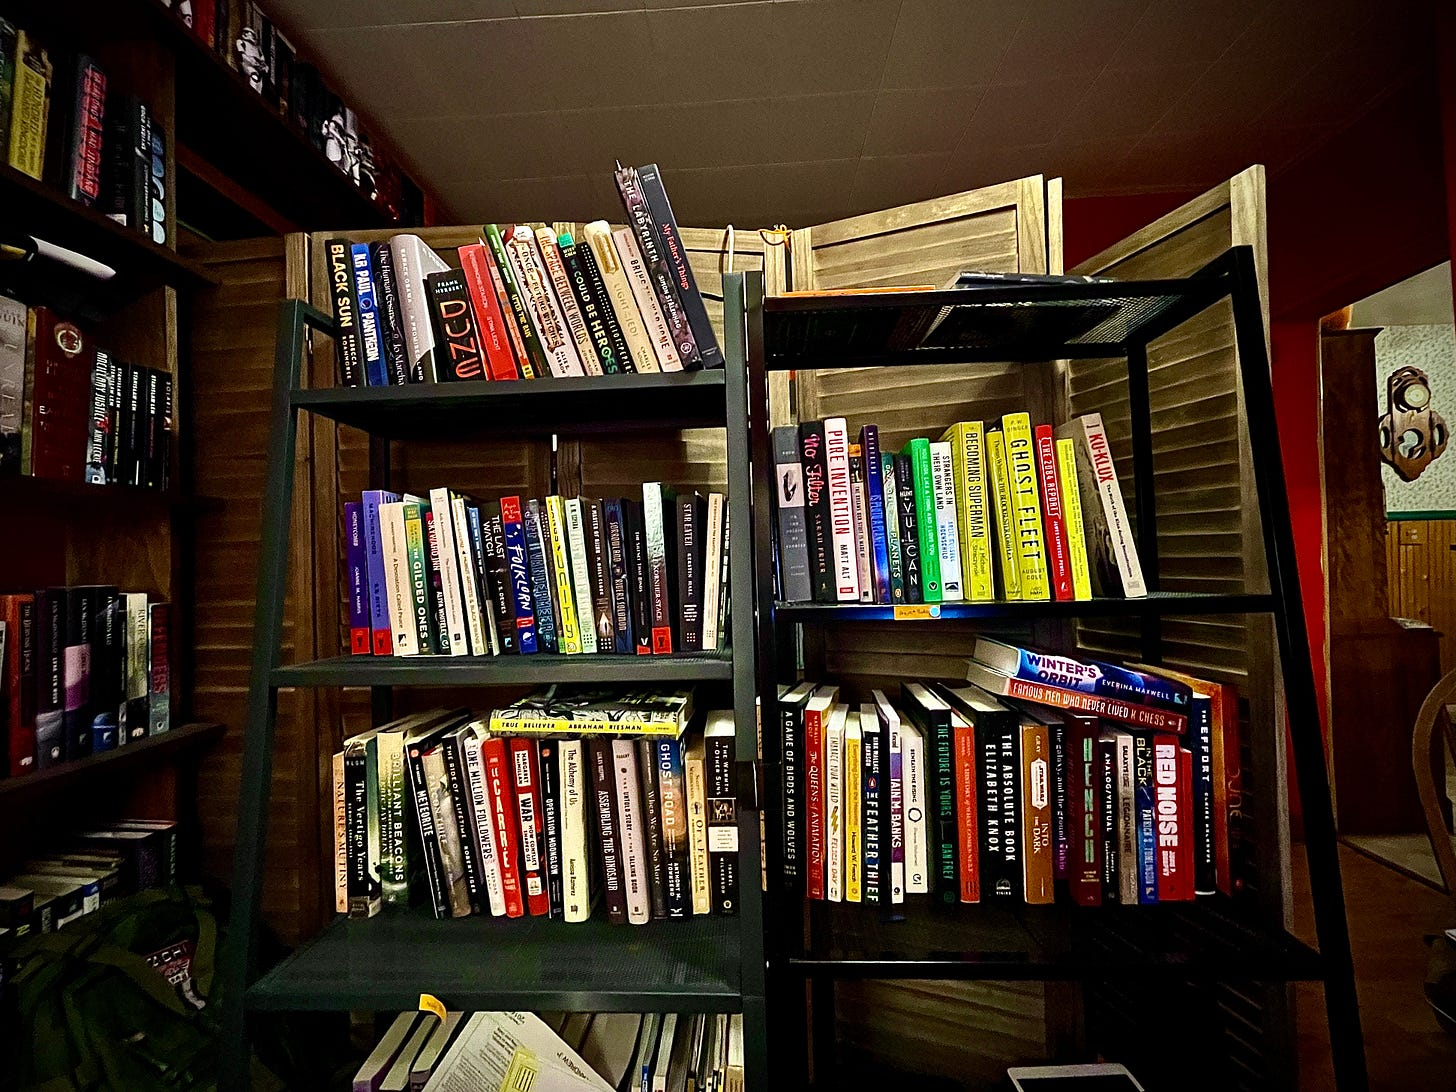 Two bookshelves, loaded down with colorful books.